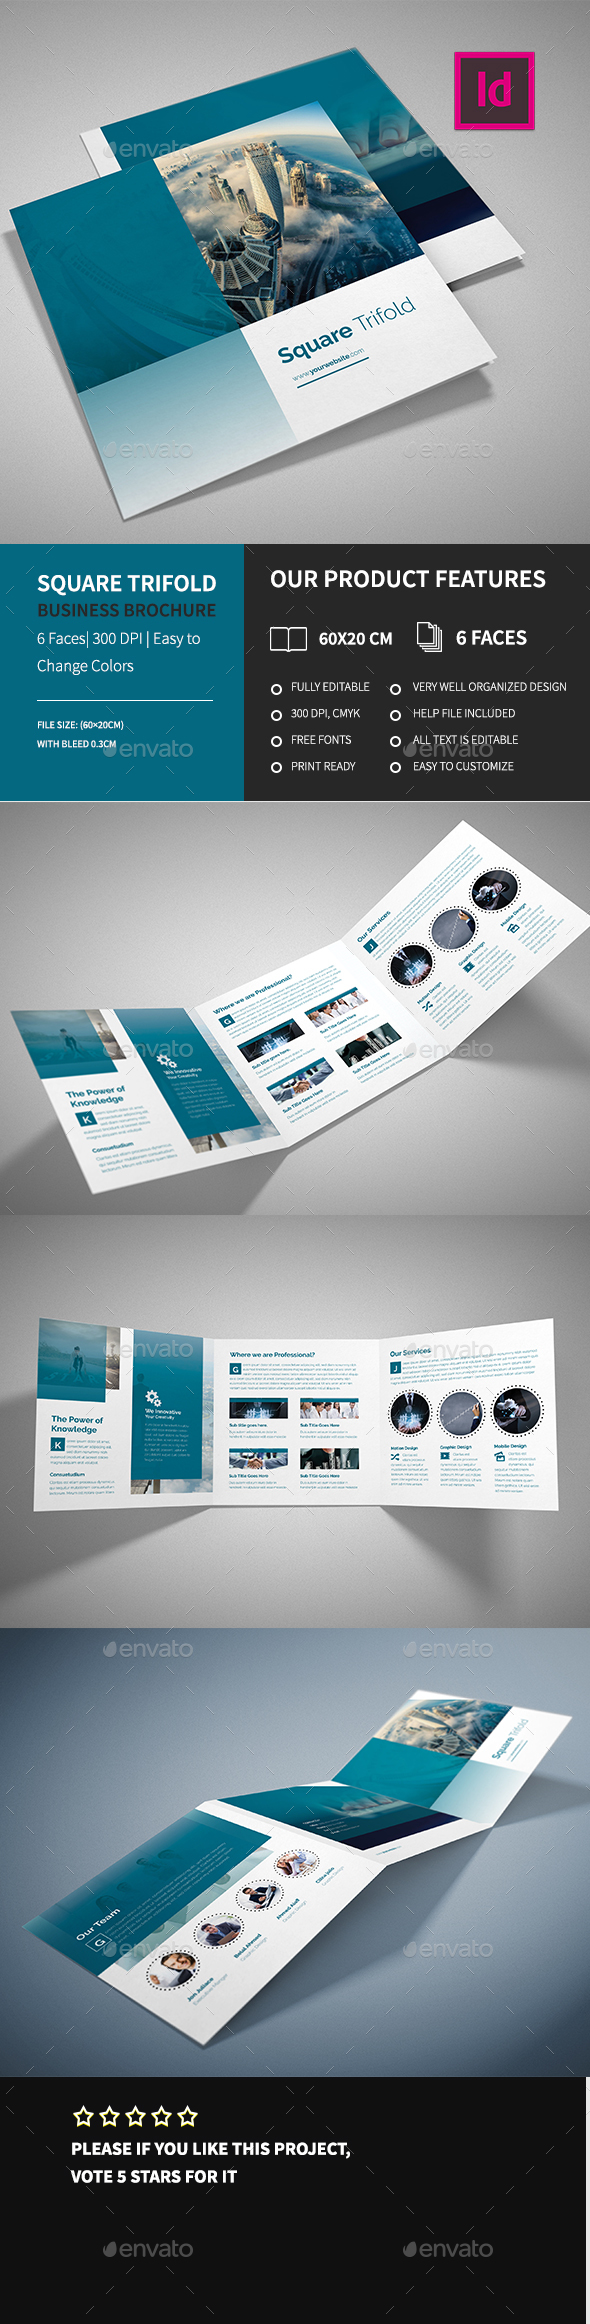 Corporate Square Trifold Business Brochure  - Corporate Brochures